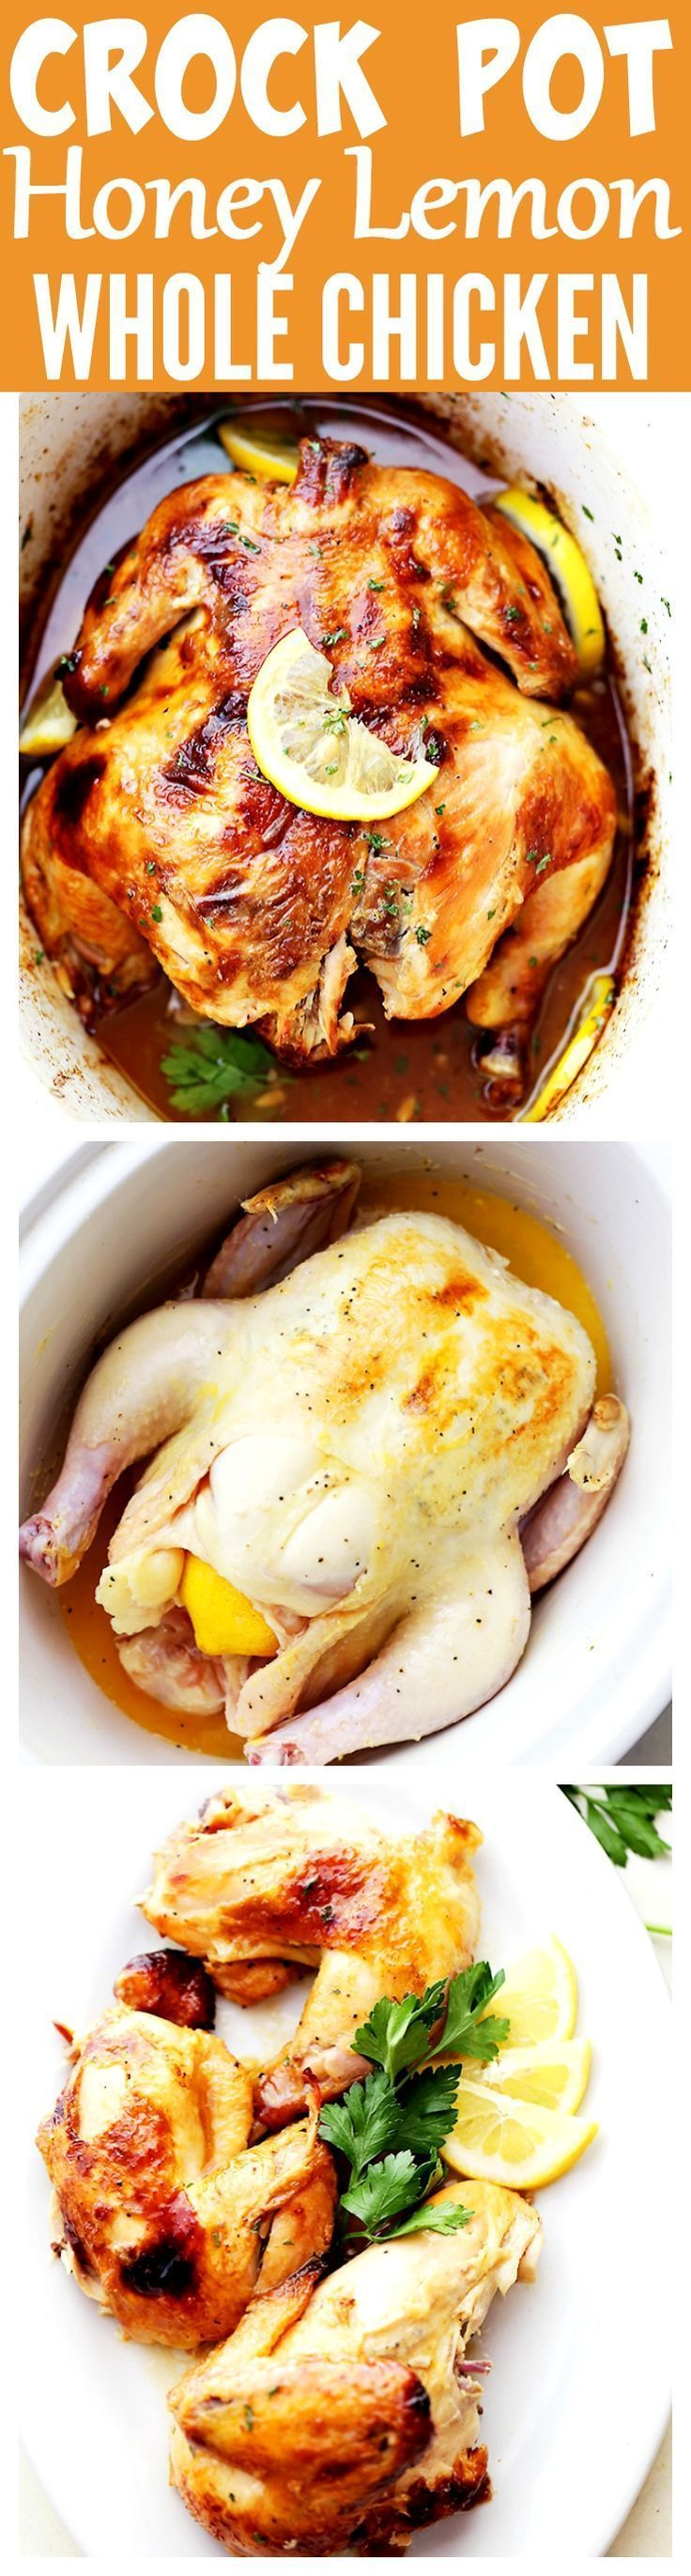 cool Crock Pot Honey Lemon Chicken Recipe - Rubbed with lemon-pepper butter and a swe...by http://dezdemooncooking.gdn